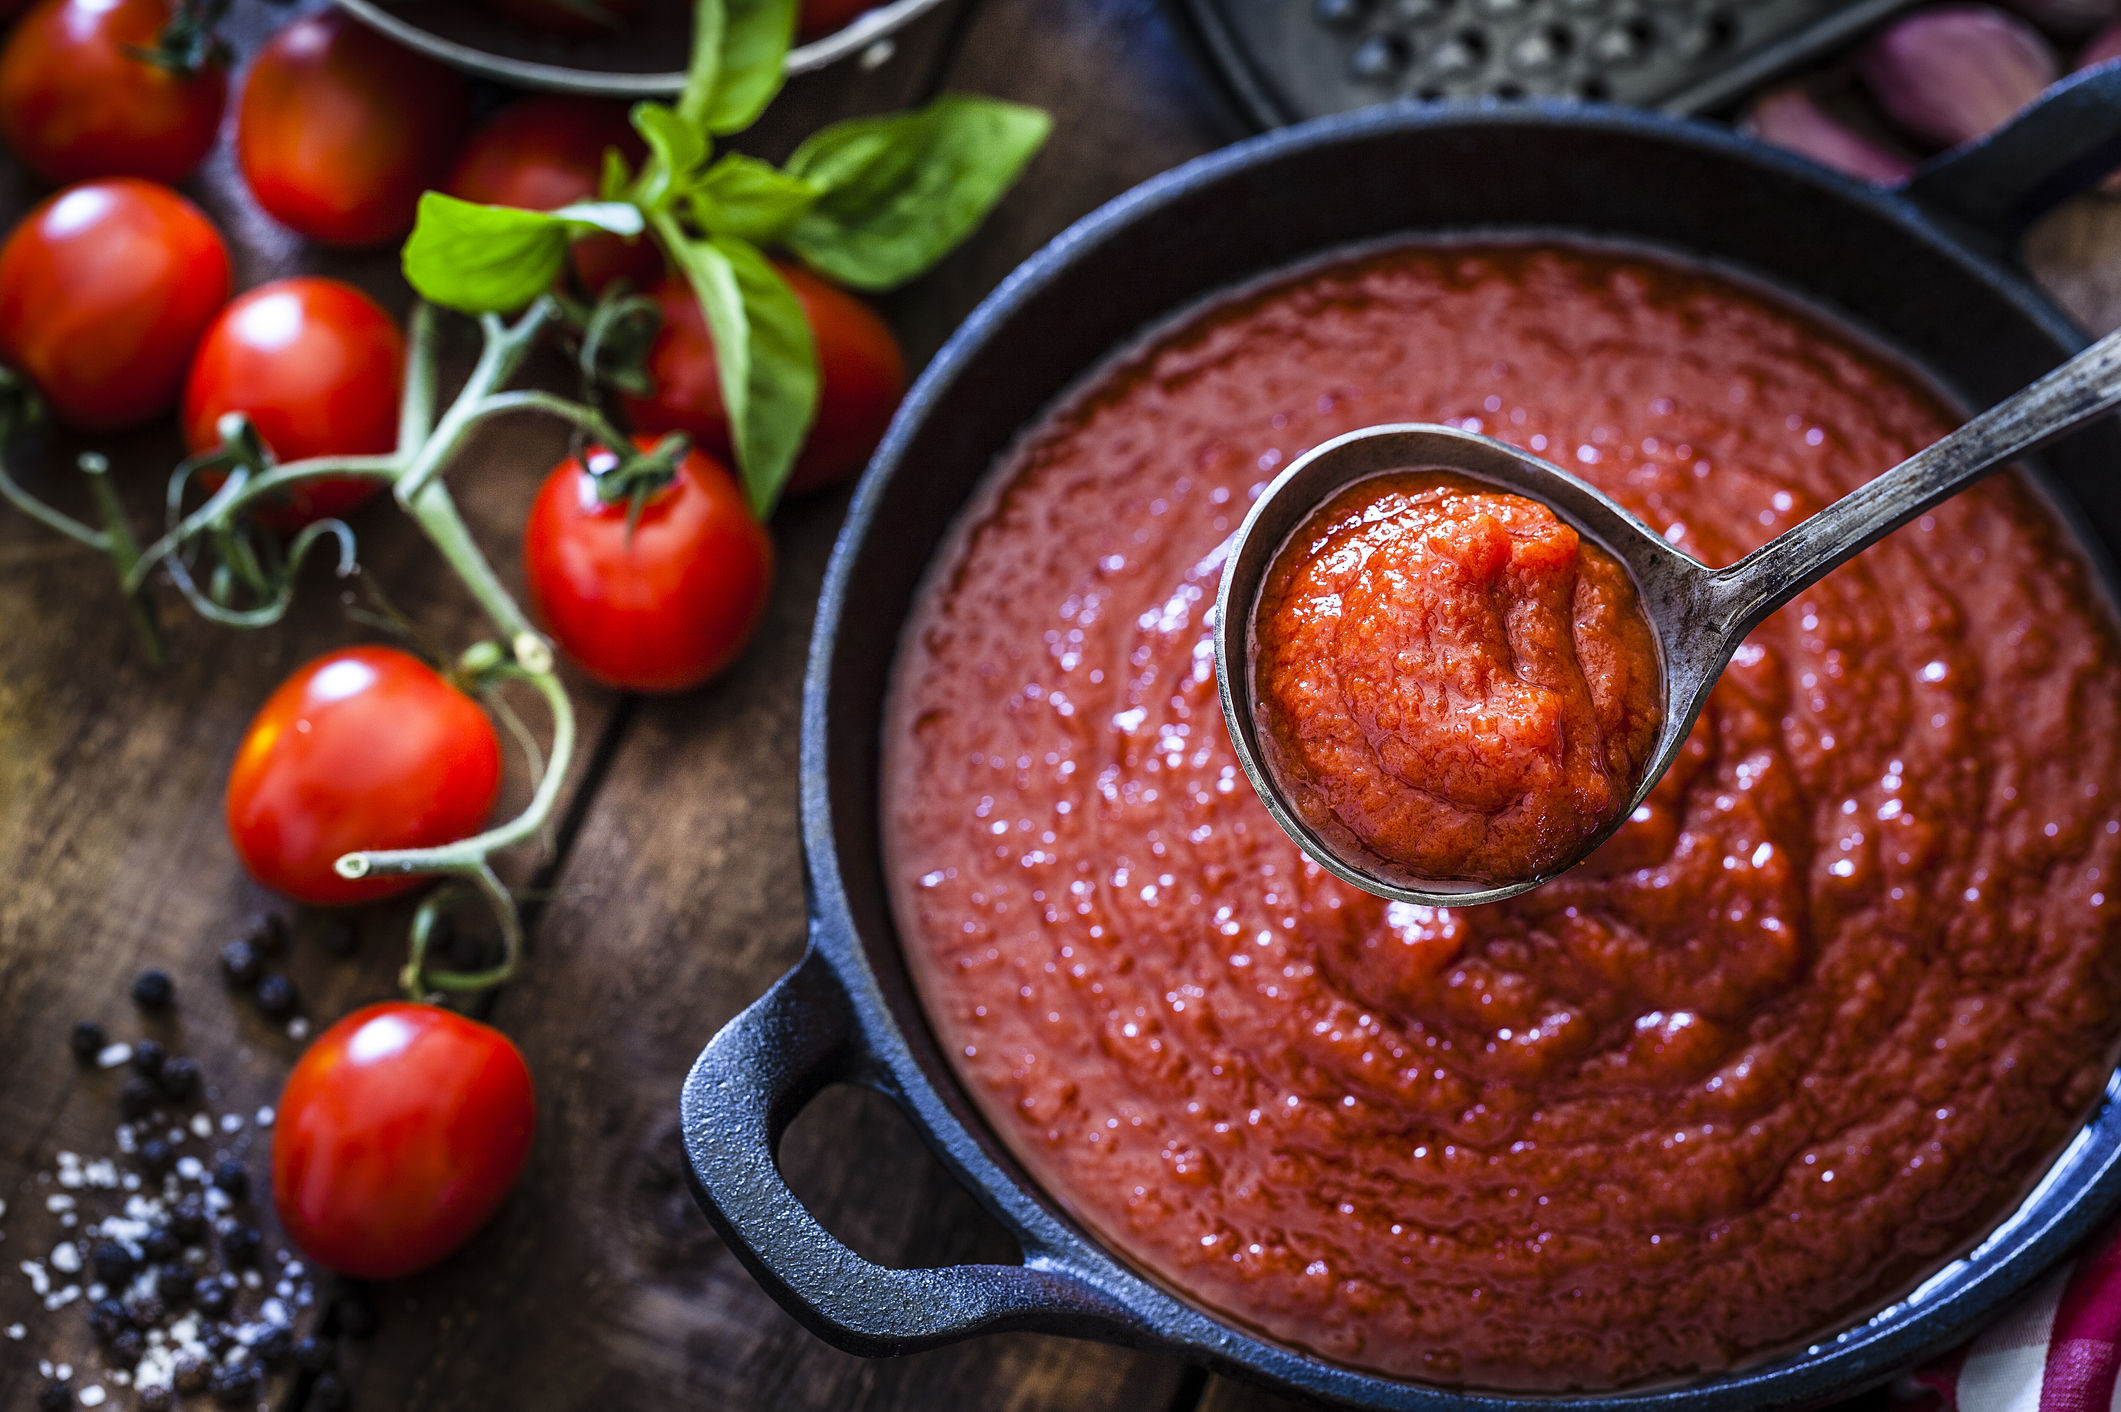 7 Ways to Make Homemade Tomato Sauce Even Better